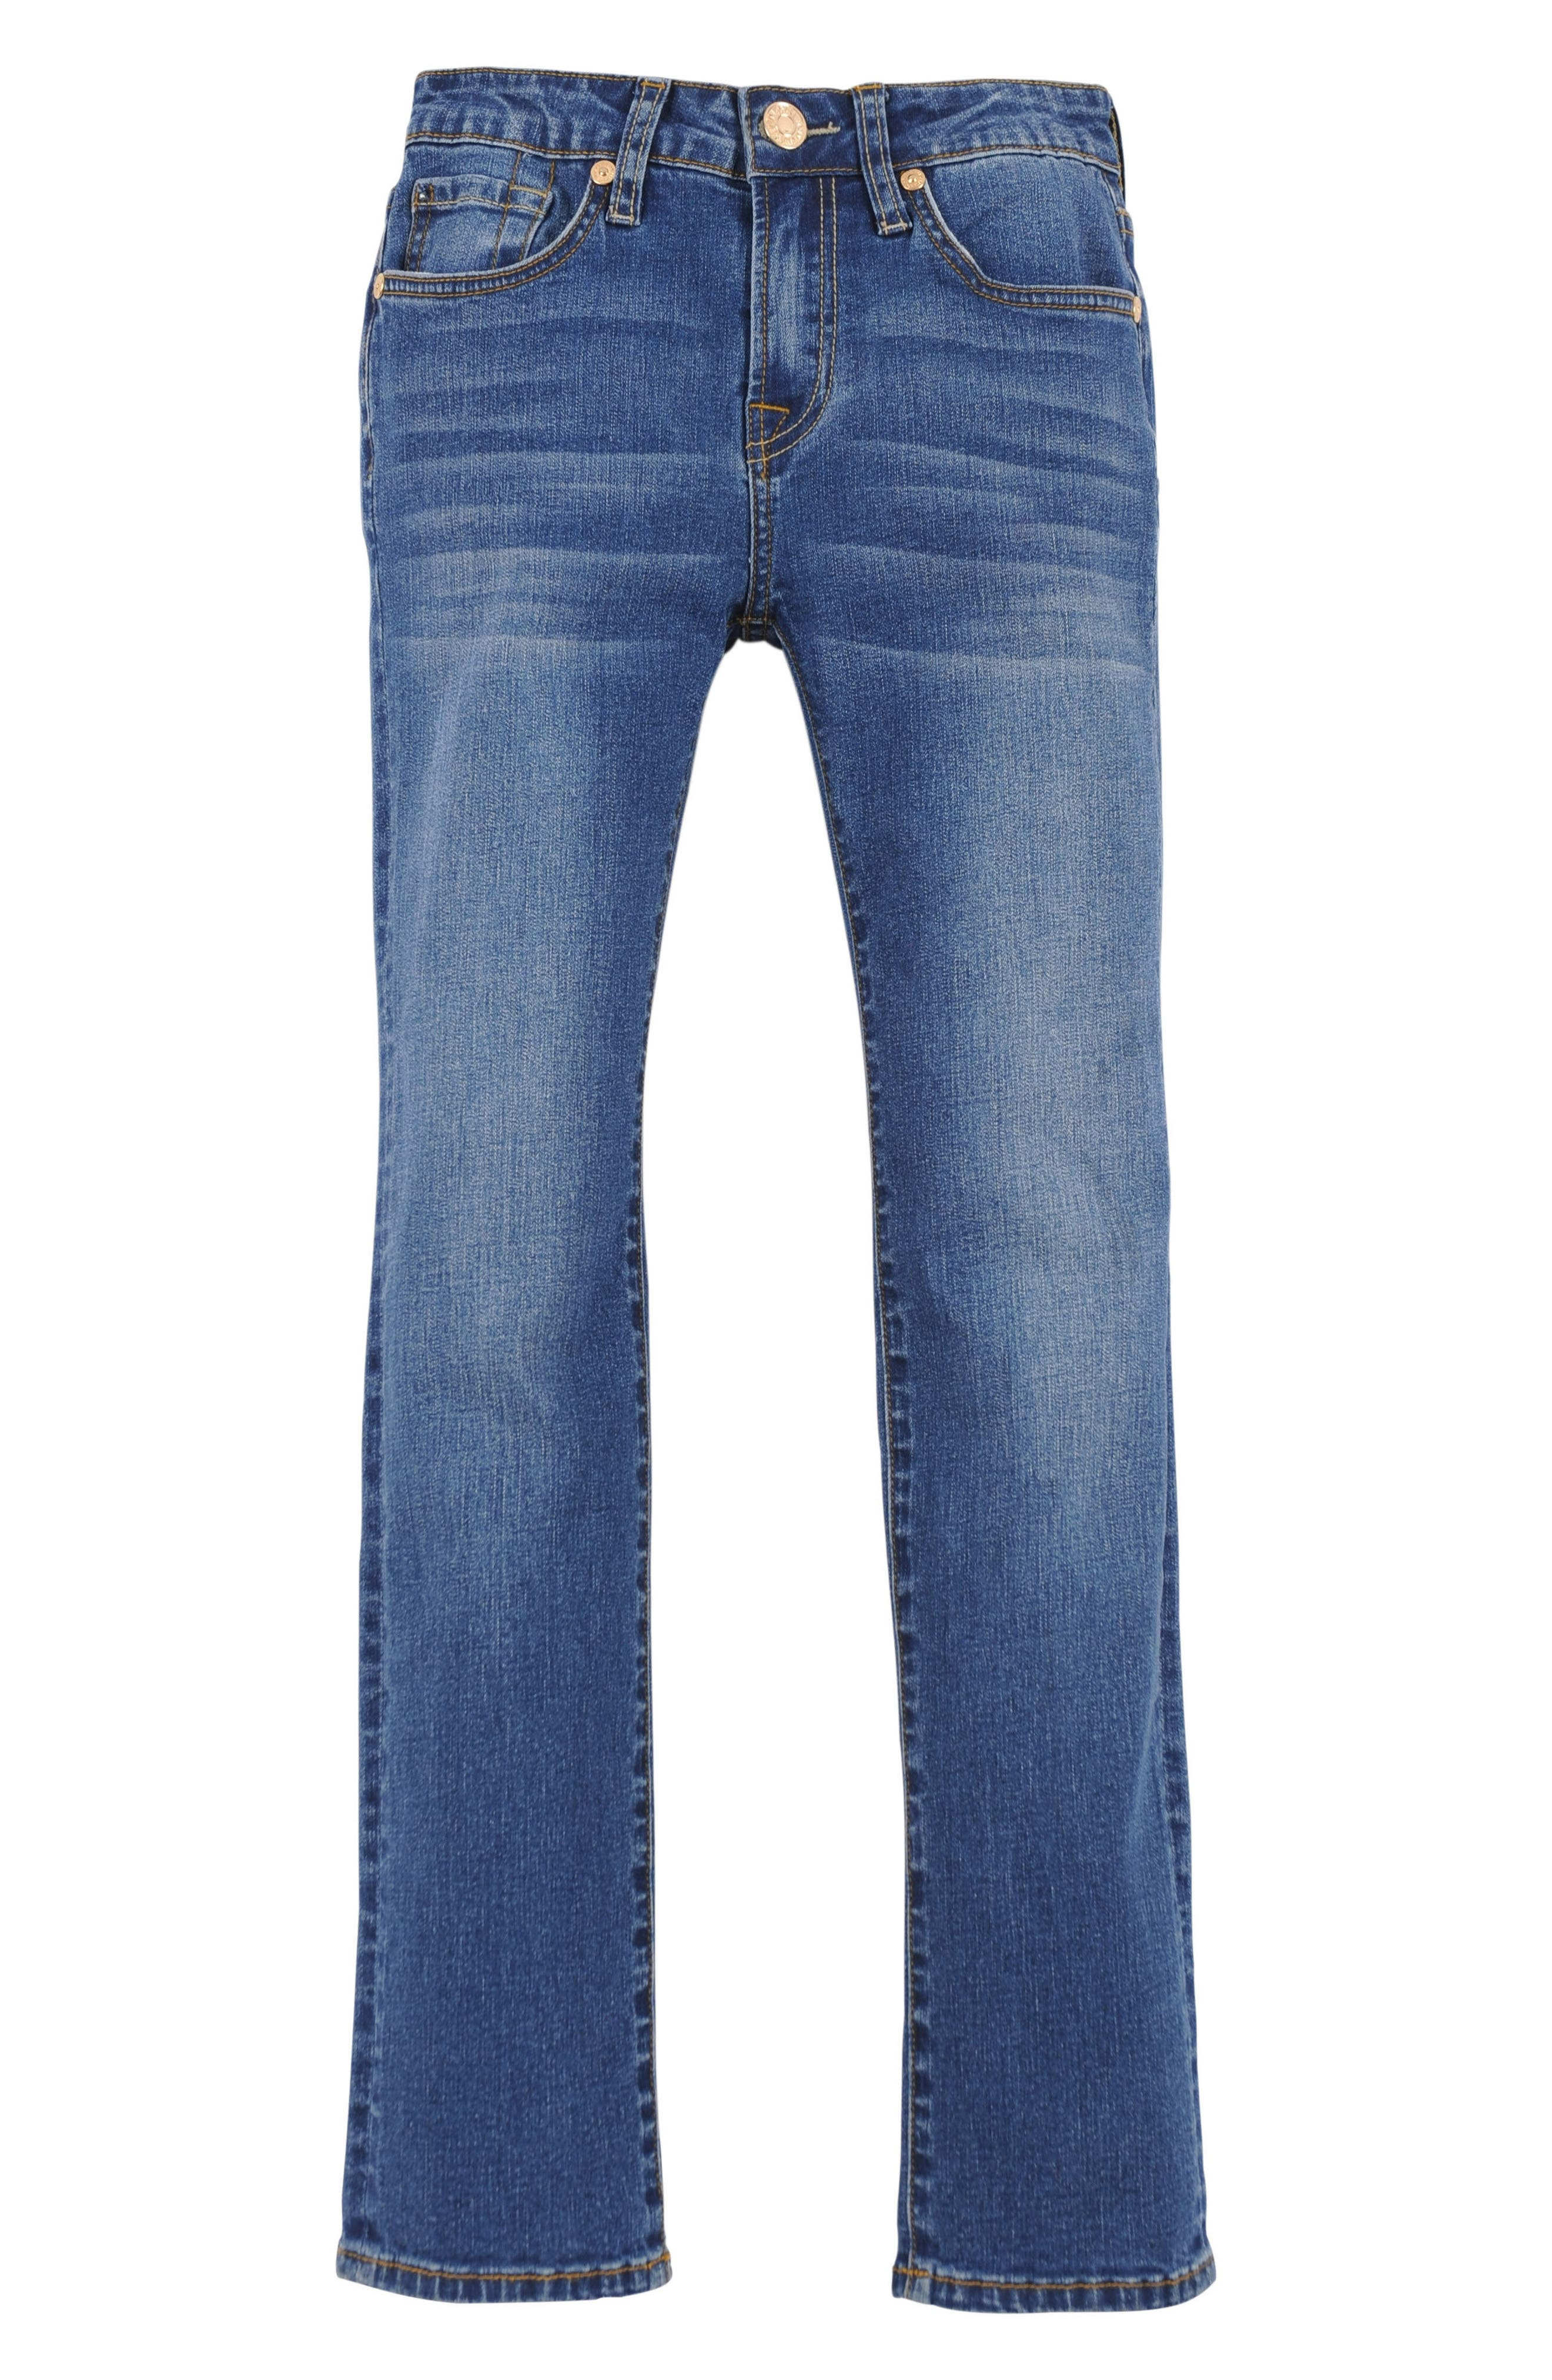 Main Image - 7 For All Mankind® Slimmy Foolproof Slim Fit Jeans (Little Boys)